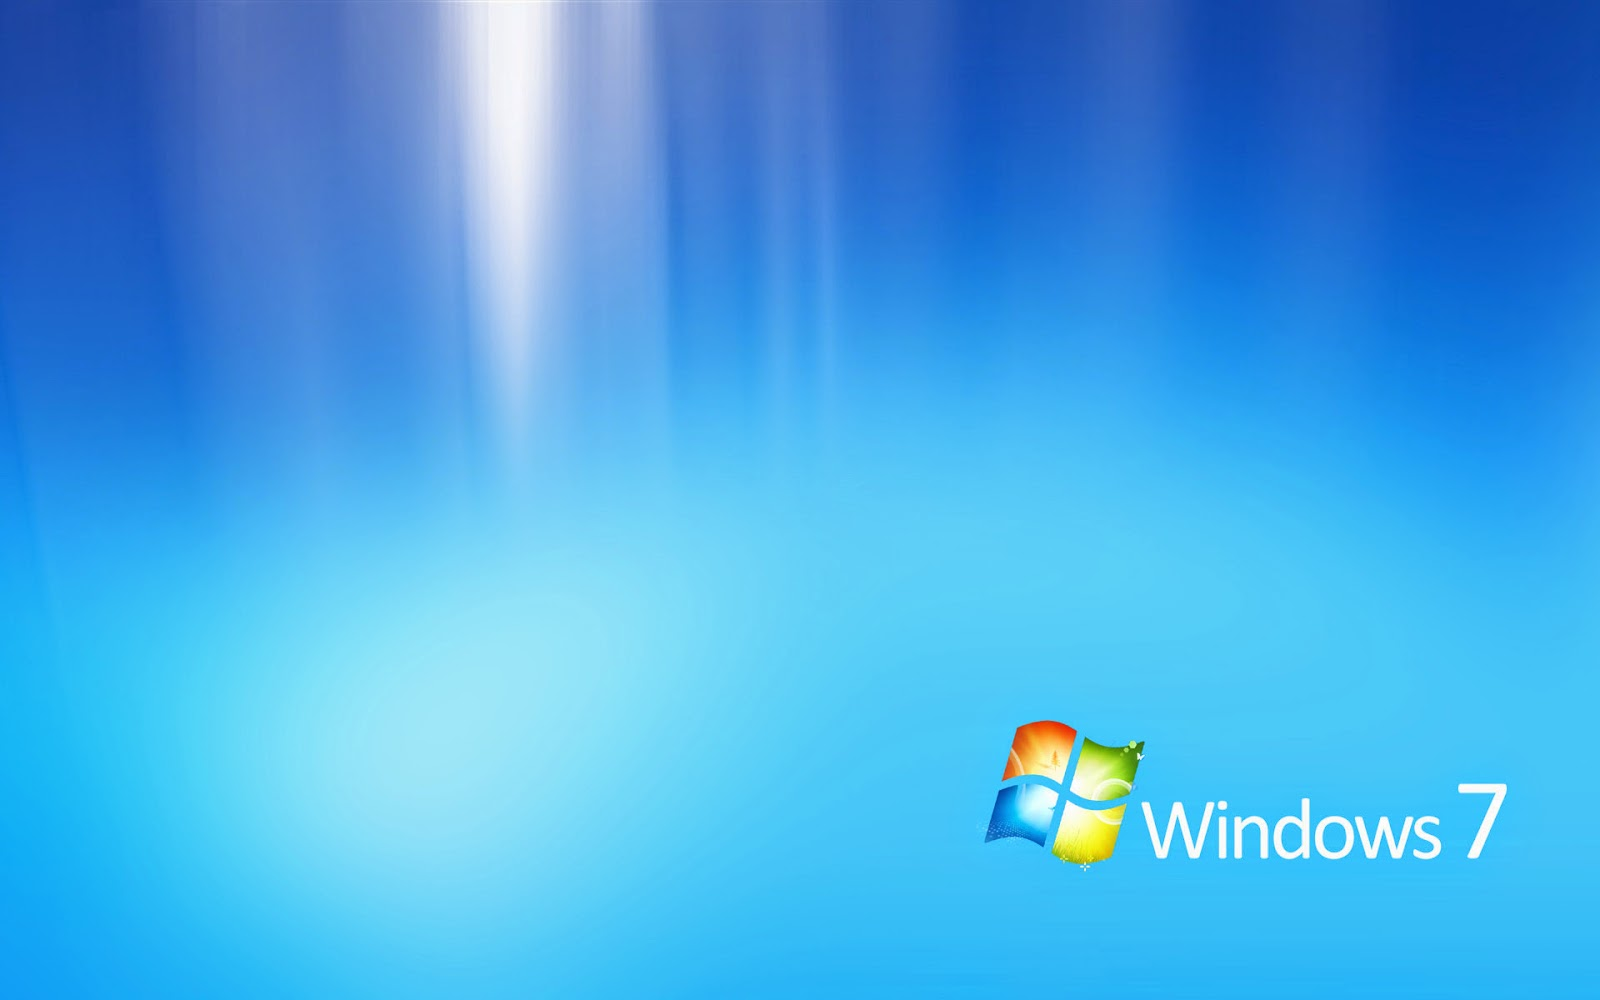 Wallpapers For Pc Windows 7 Windows 7 1559523 Hd Wallpaper Backgrounds Download